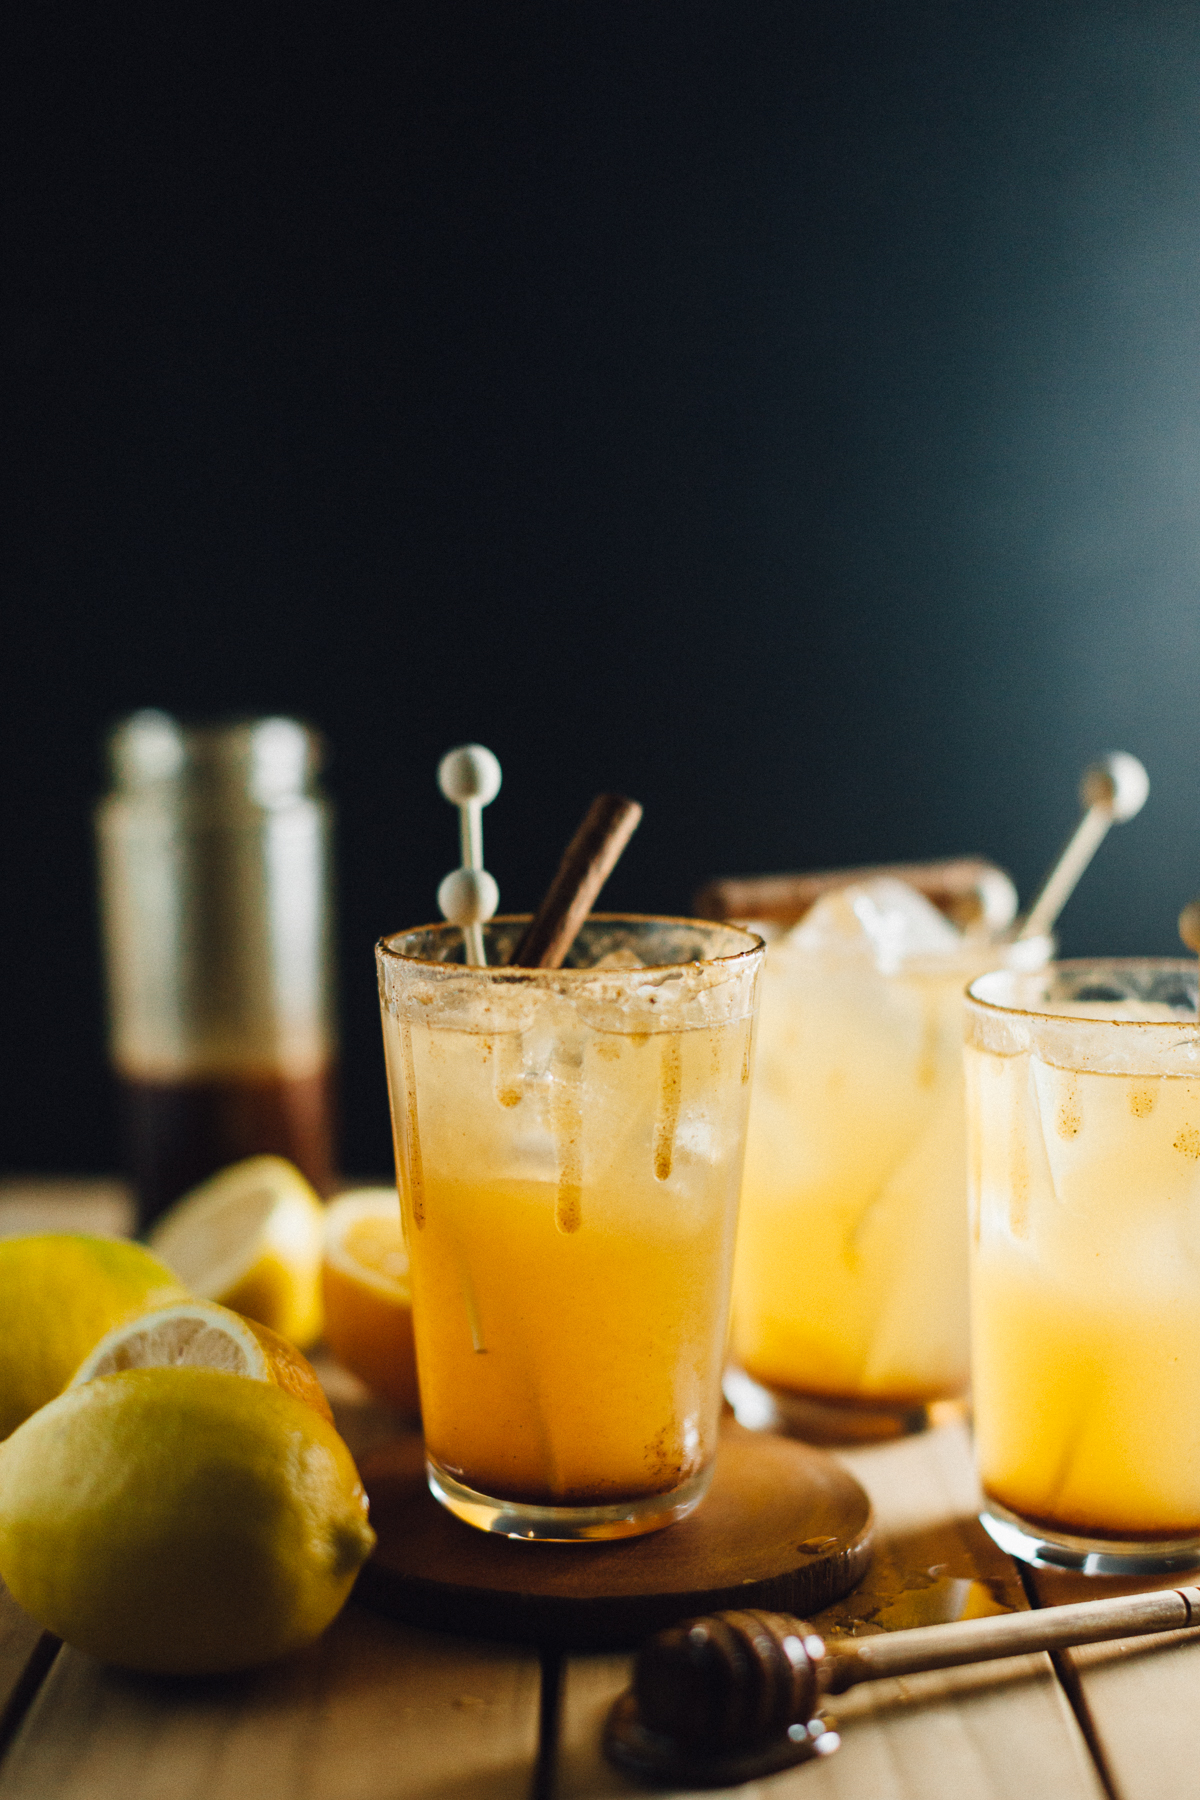 Spiced honey and citrus cocktails with mixedwithtrop for Honey whiskey drink recipes